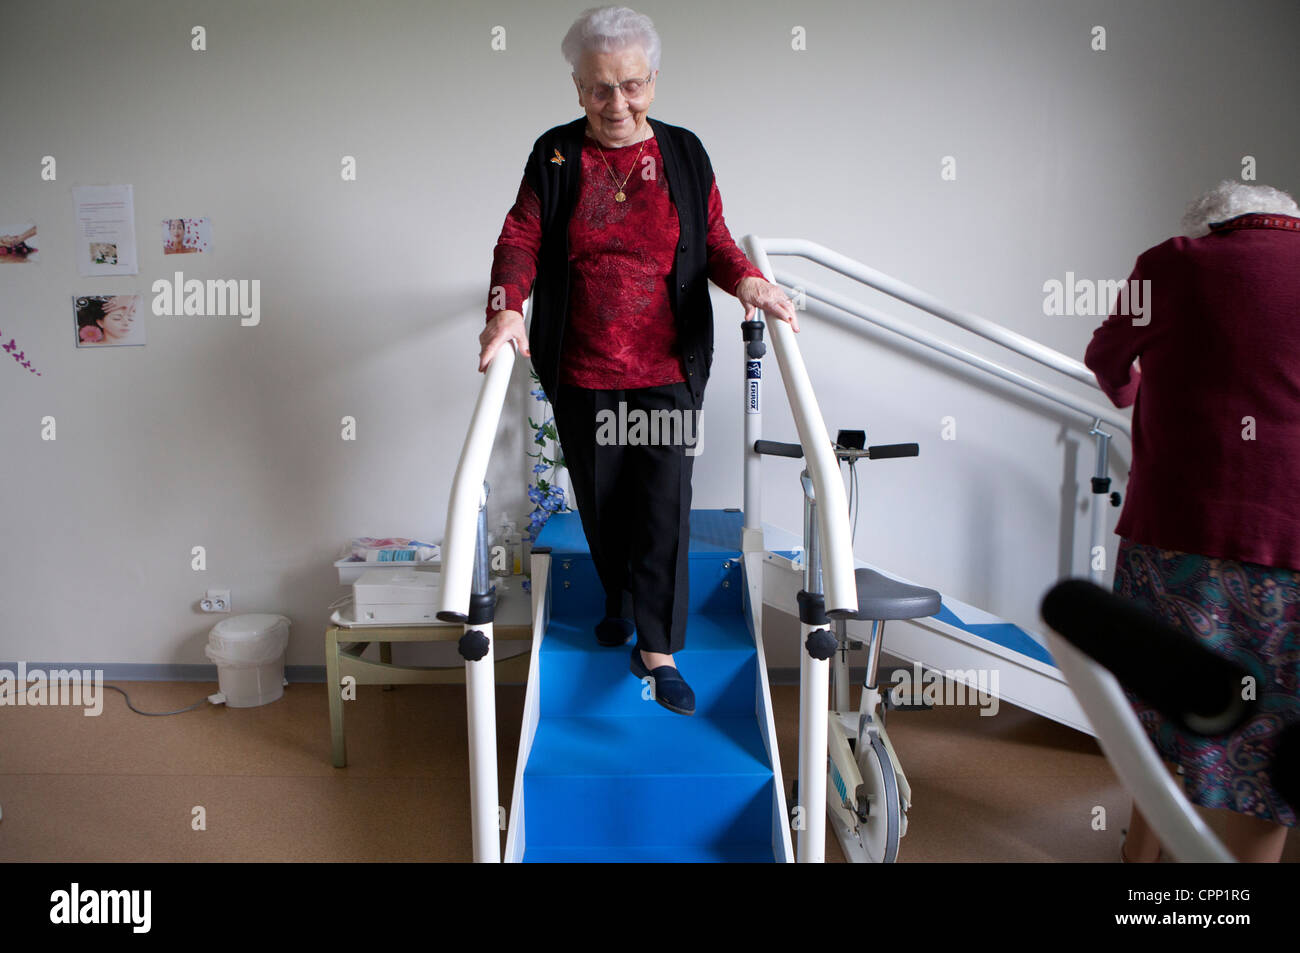 ELDERLY P. IN PHYSICAL THERAPY - Stock Image